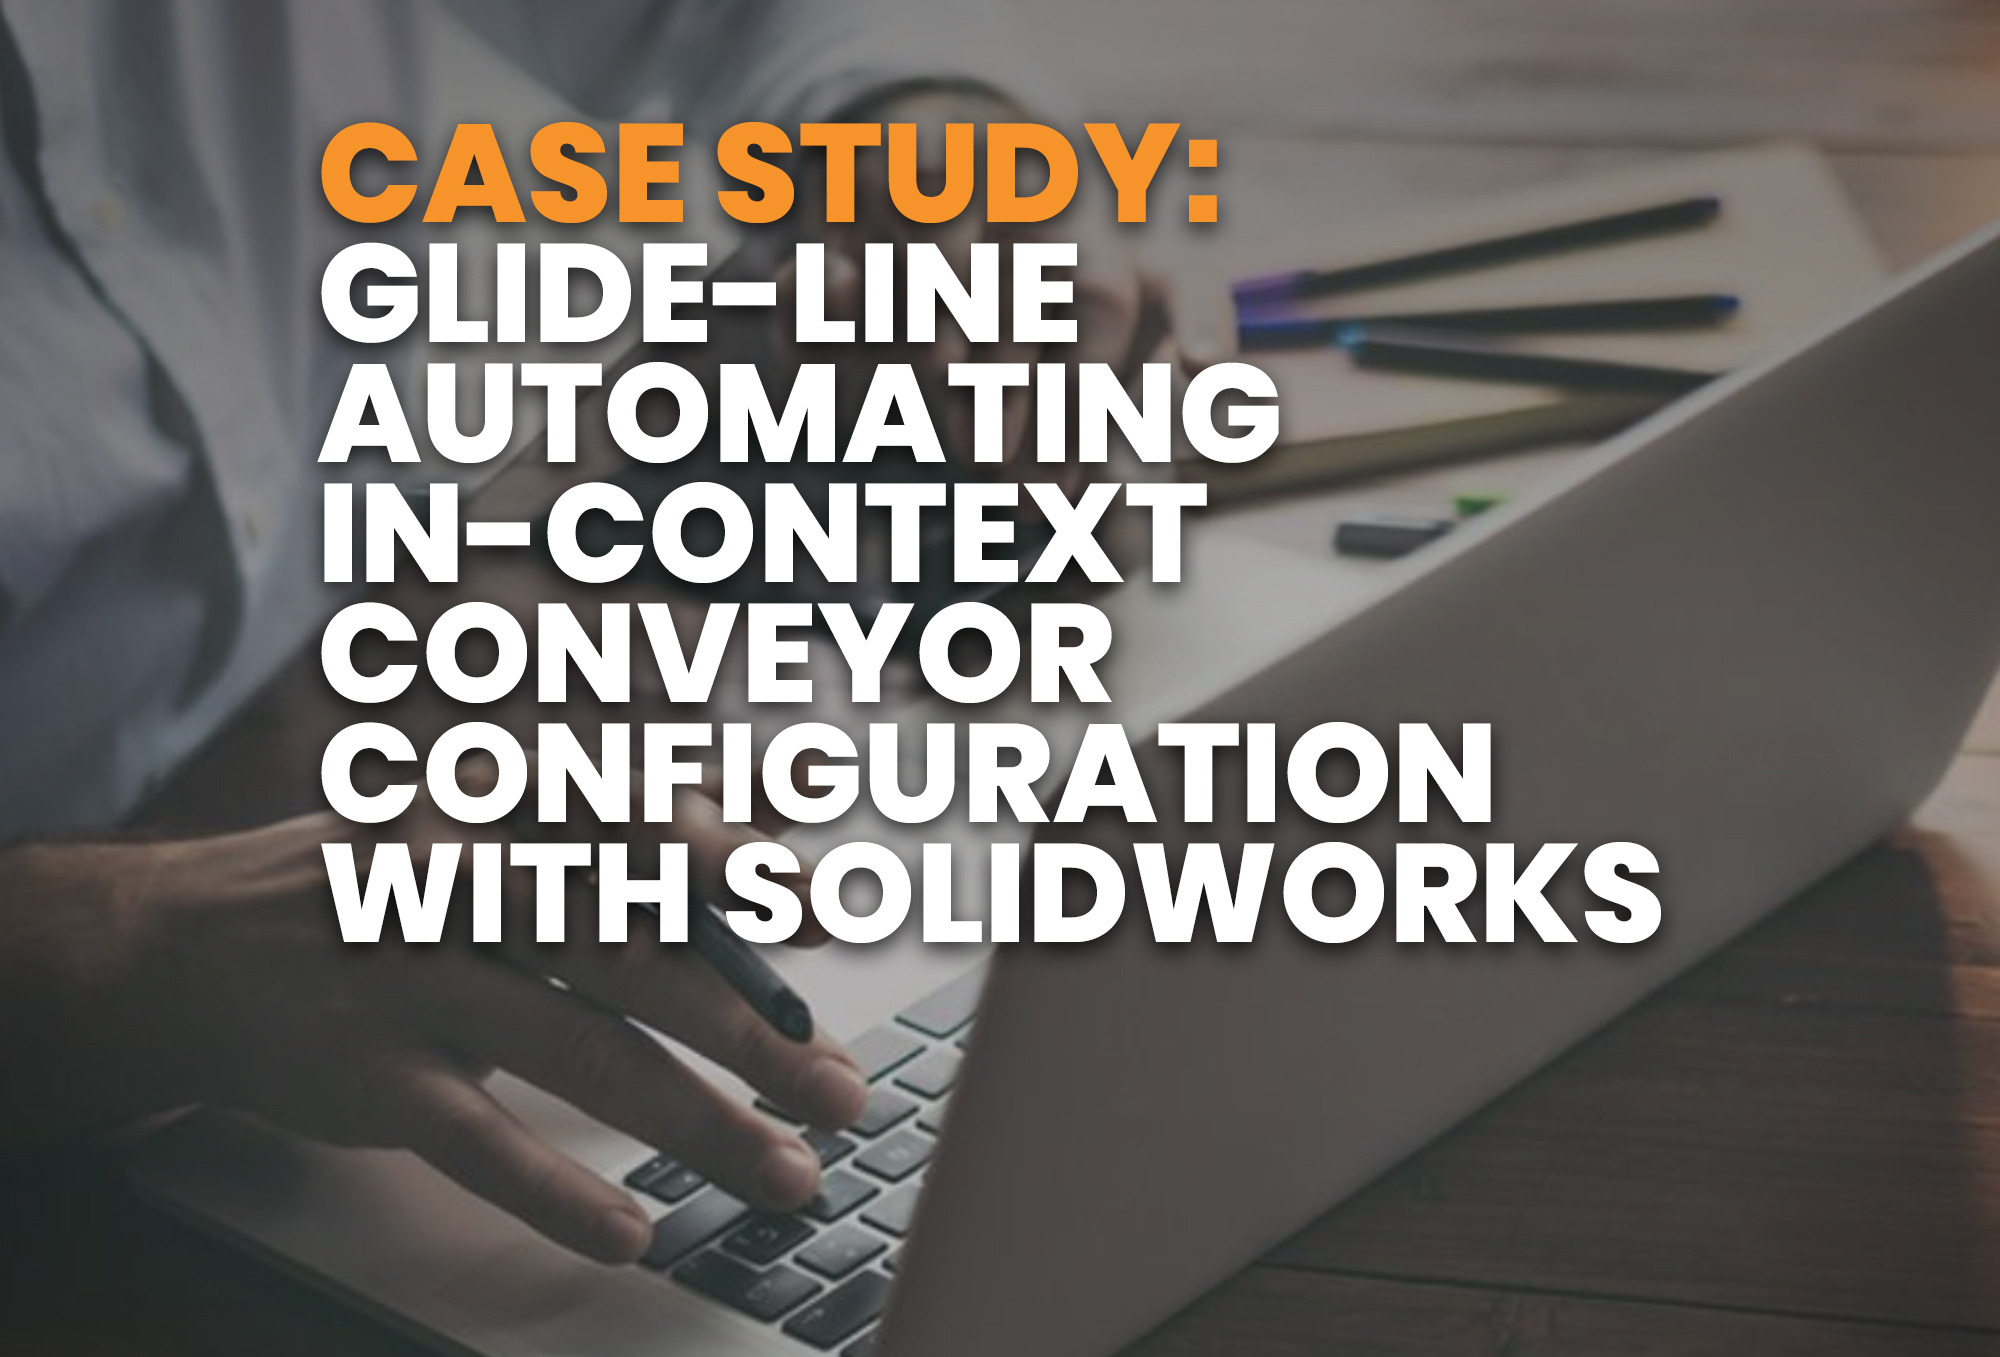 case study- GLIDE-LINE AUTOMATING IN-CONTEXT CONVEYOR CONFIGURATION WITH SOLIDWORKS